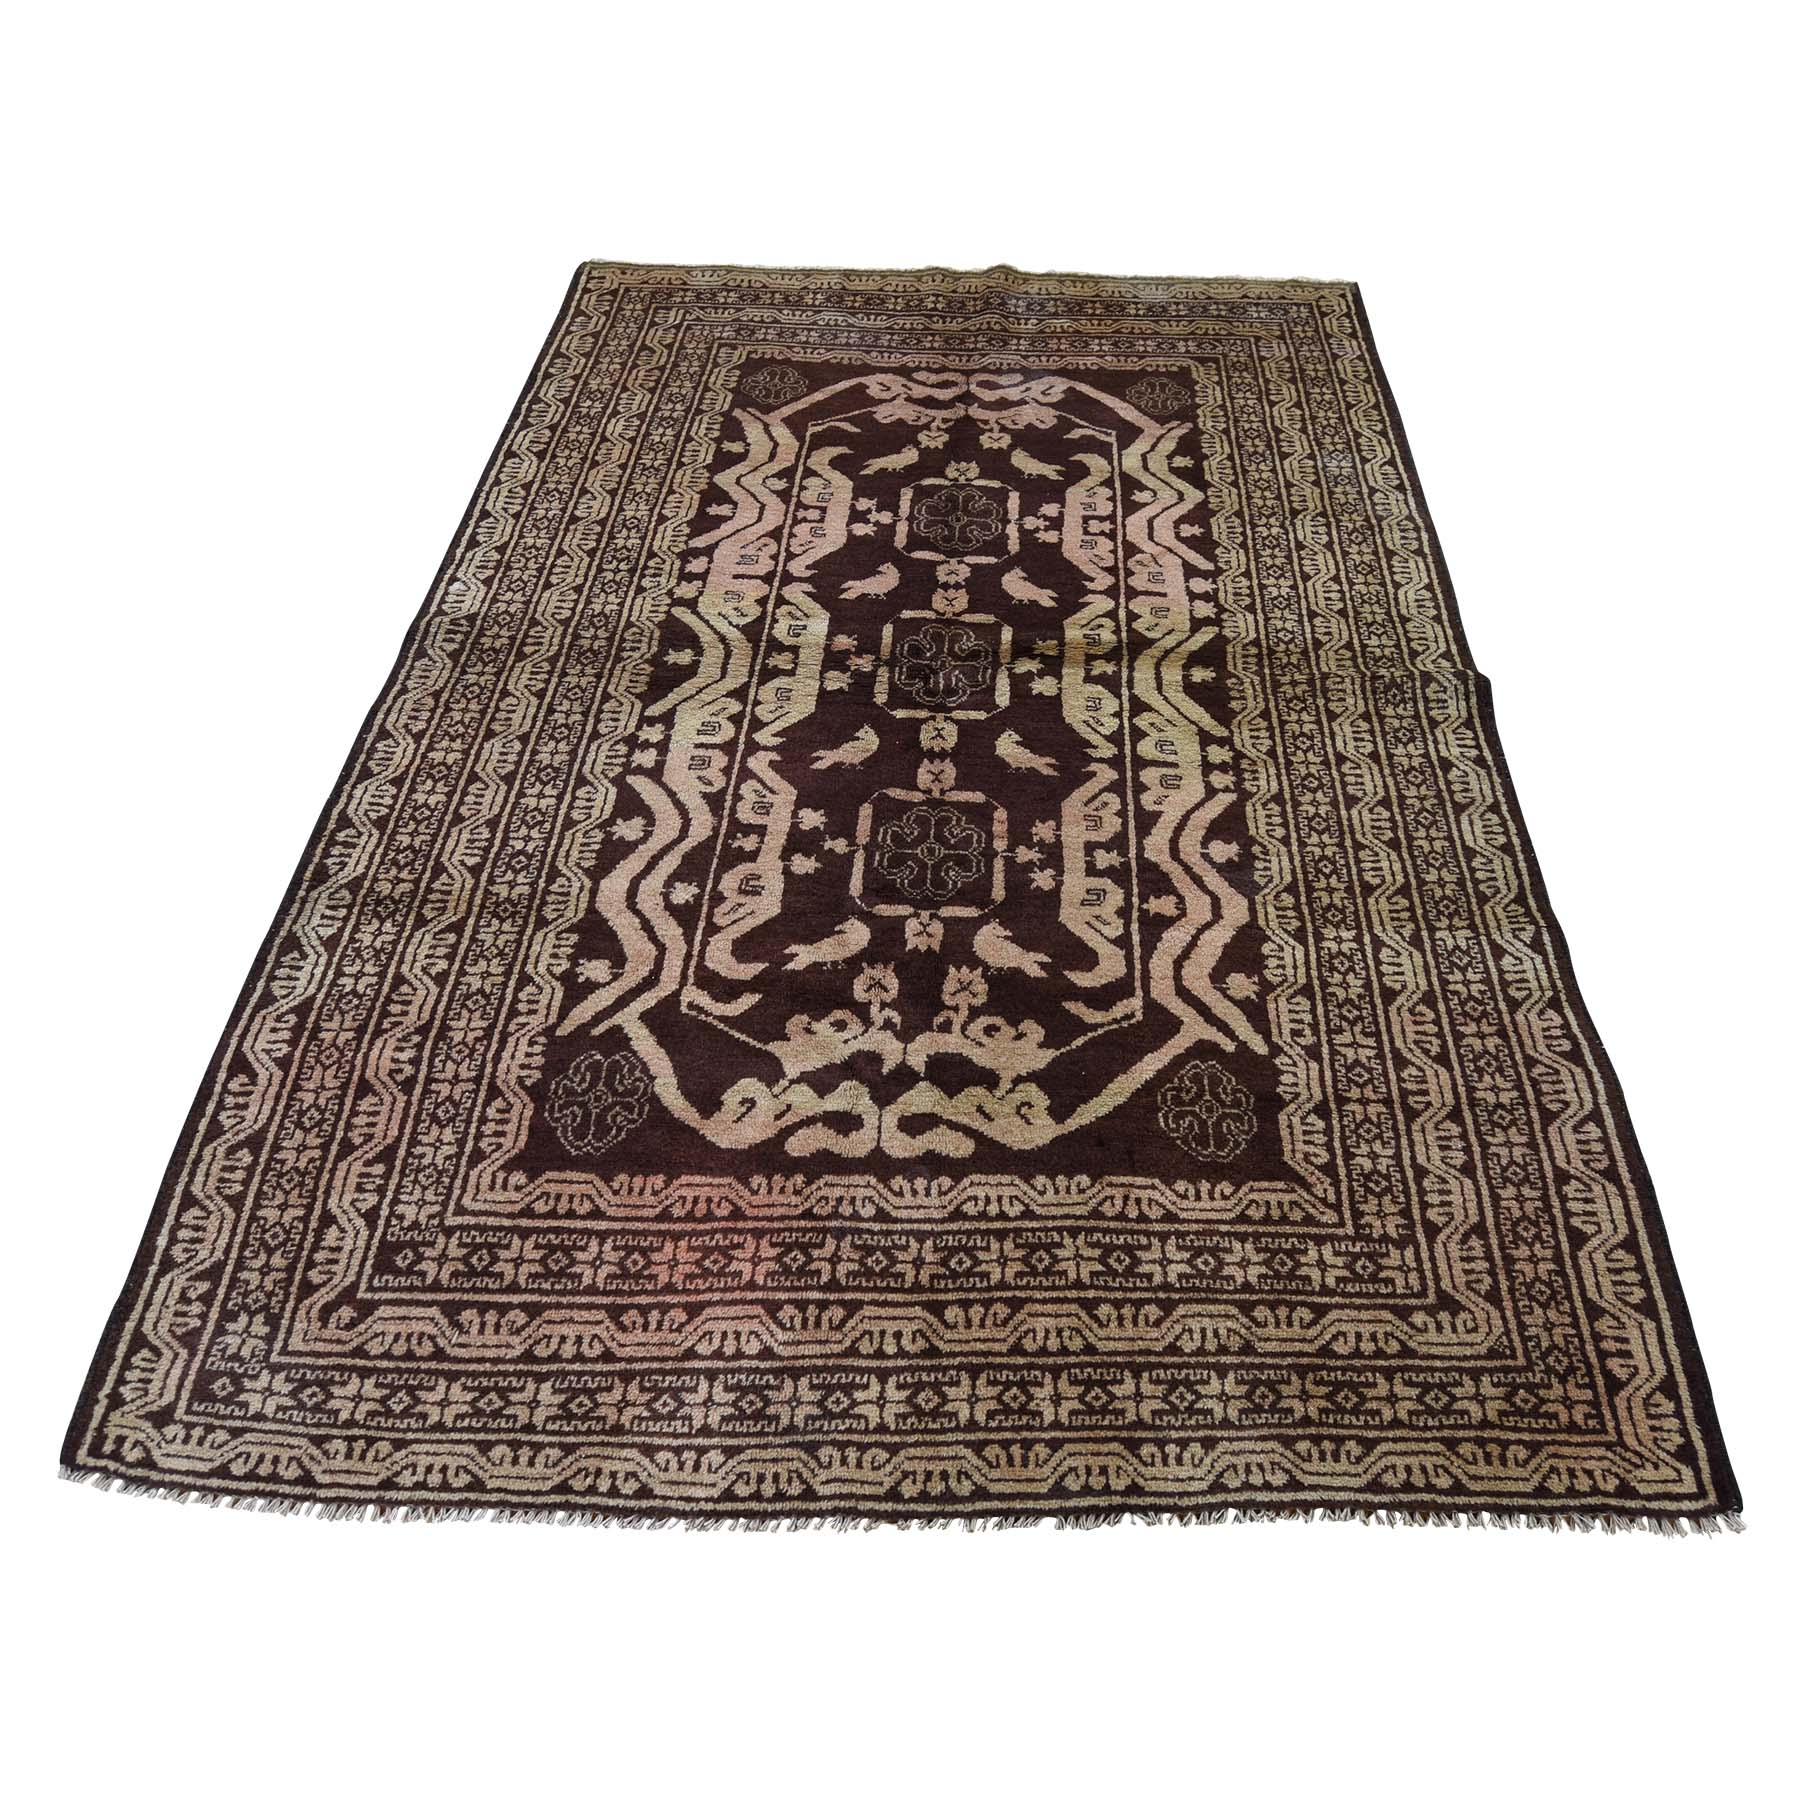 "4'1""X6'9"" Pure Wool Afghan Baluch Washed Out Color With Birds Hand-Knotted Oriental Rug moadc9e0"